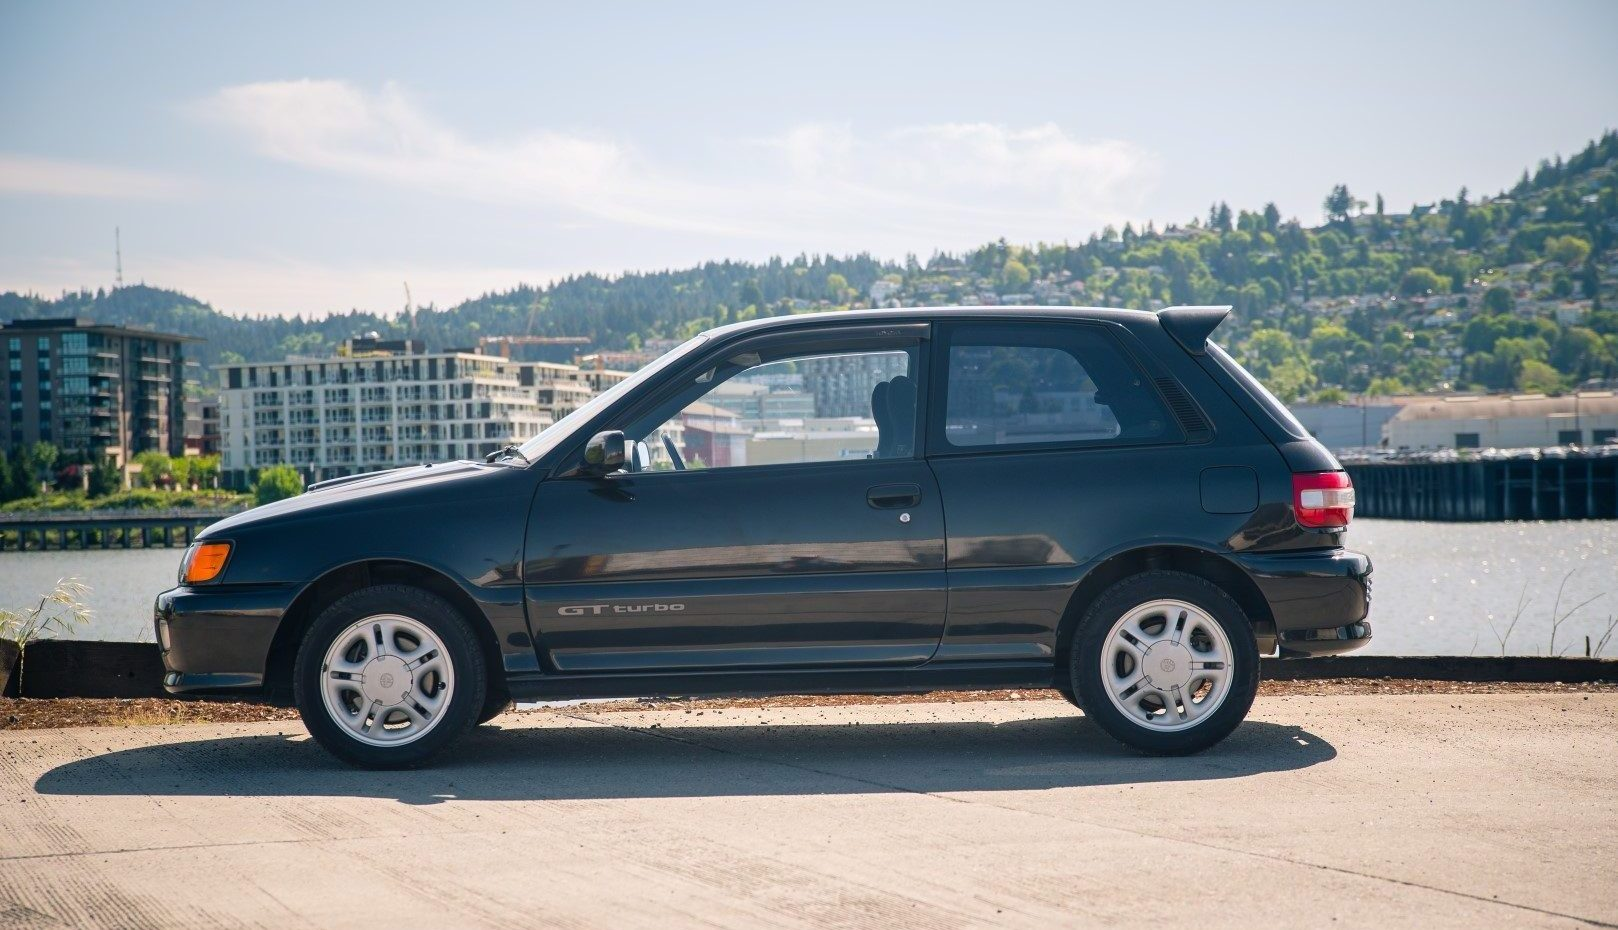 Toyota Starlet Turbo, Starlet EP82, Toyota Starlet Hatchback, Toyota Starlet for sale